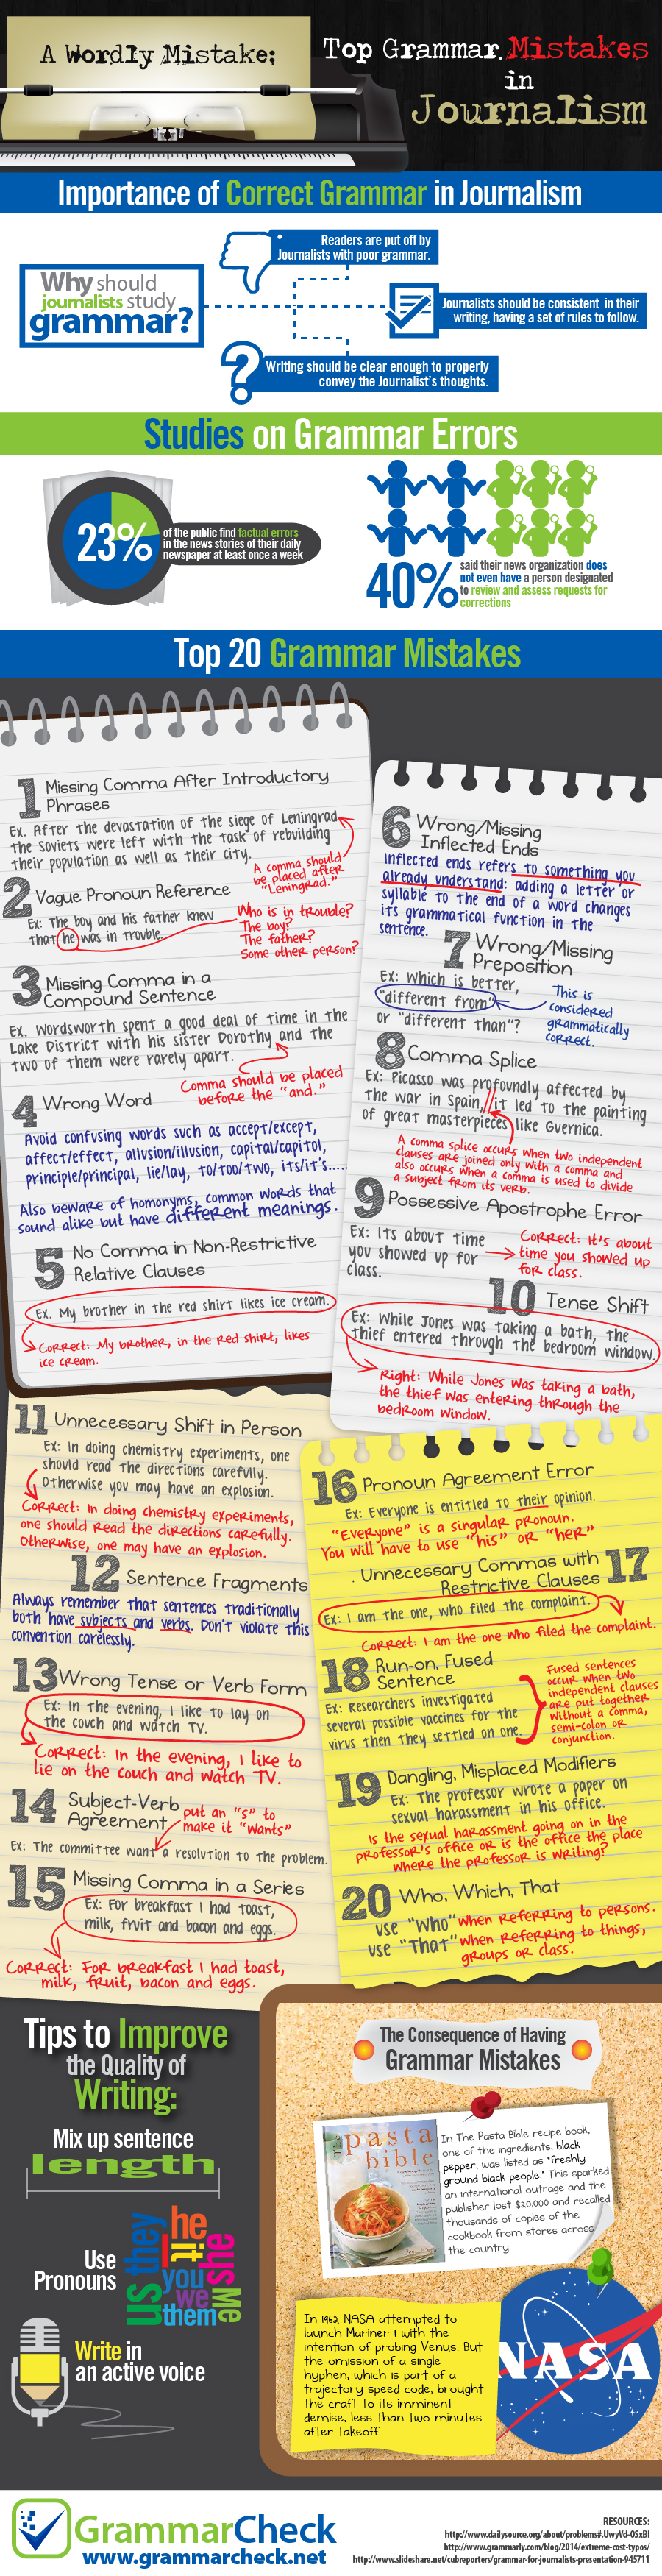 A Wordly Mistake: Top 20 Grammar Mistakes in Journalism (Infographic)